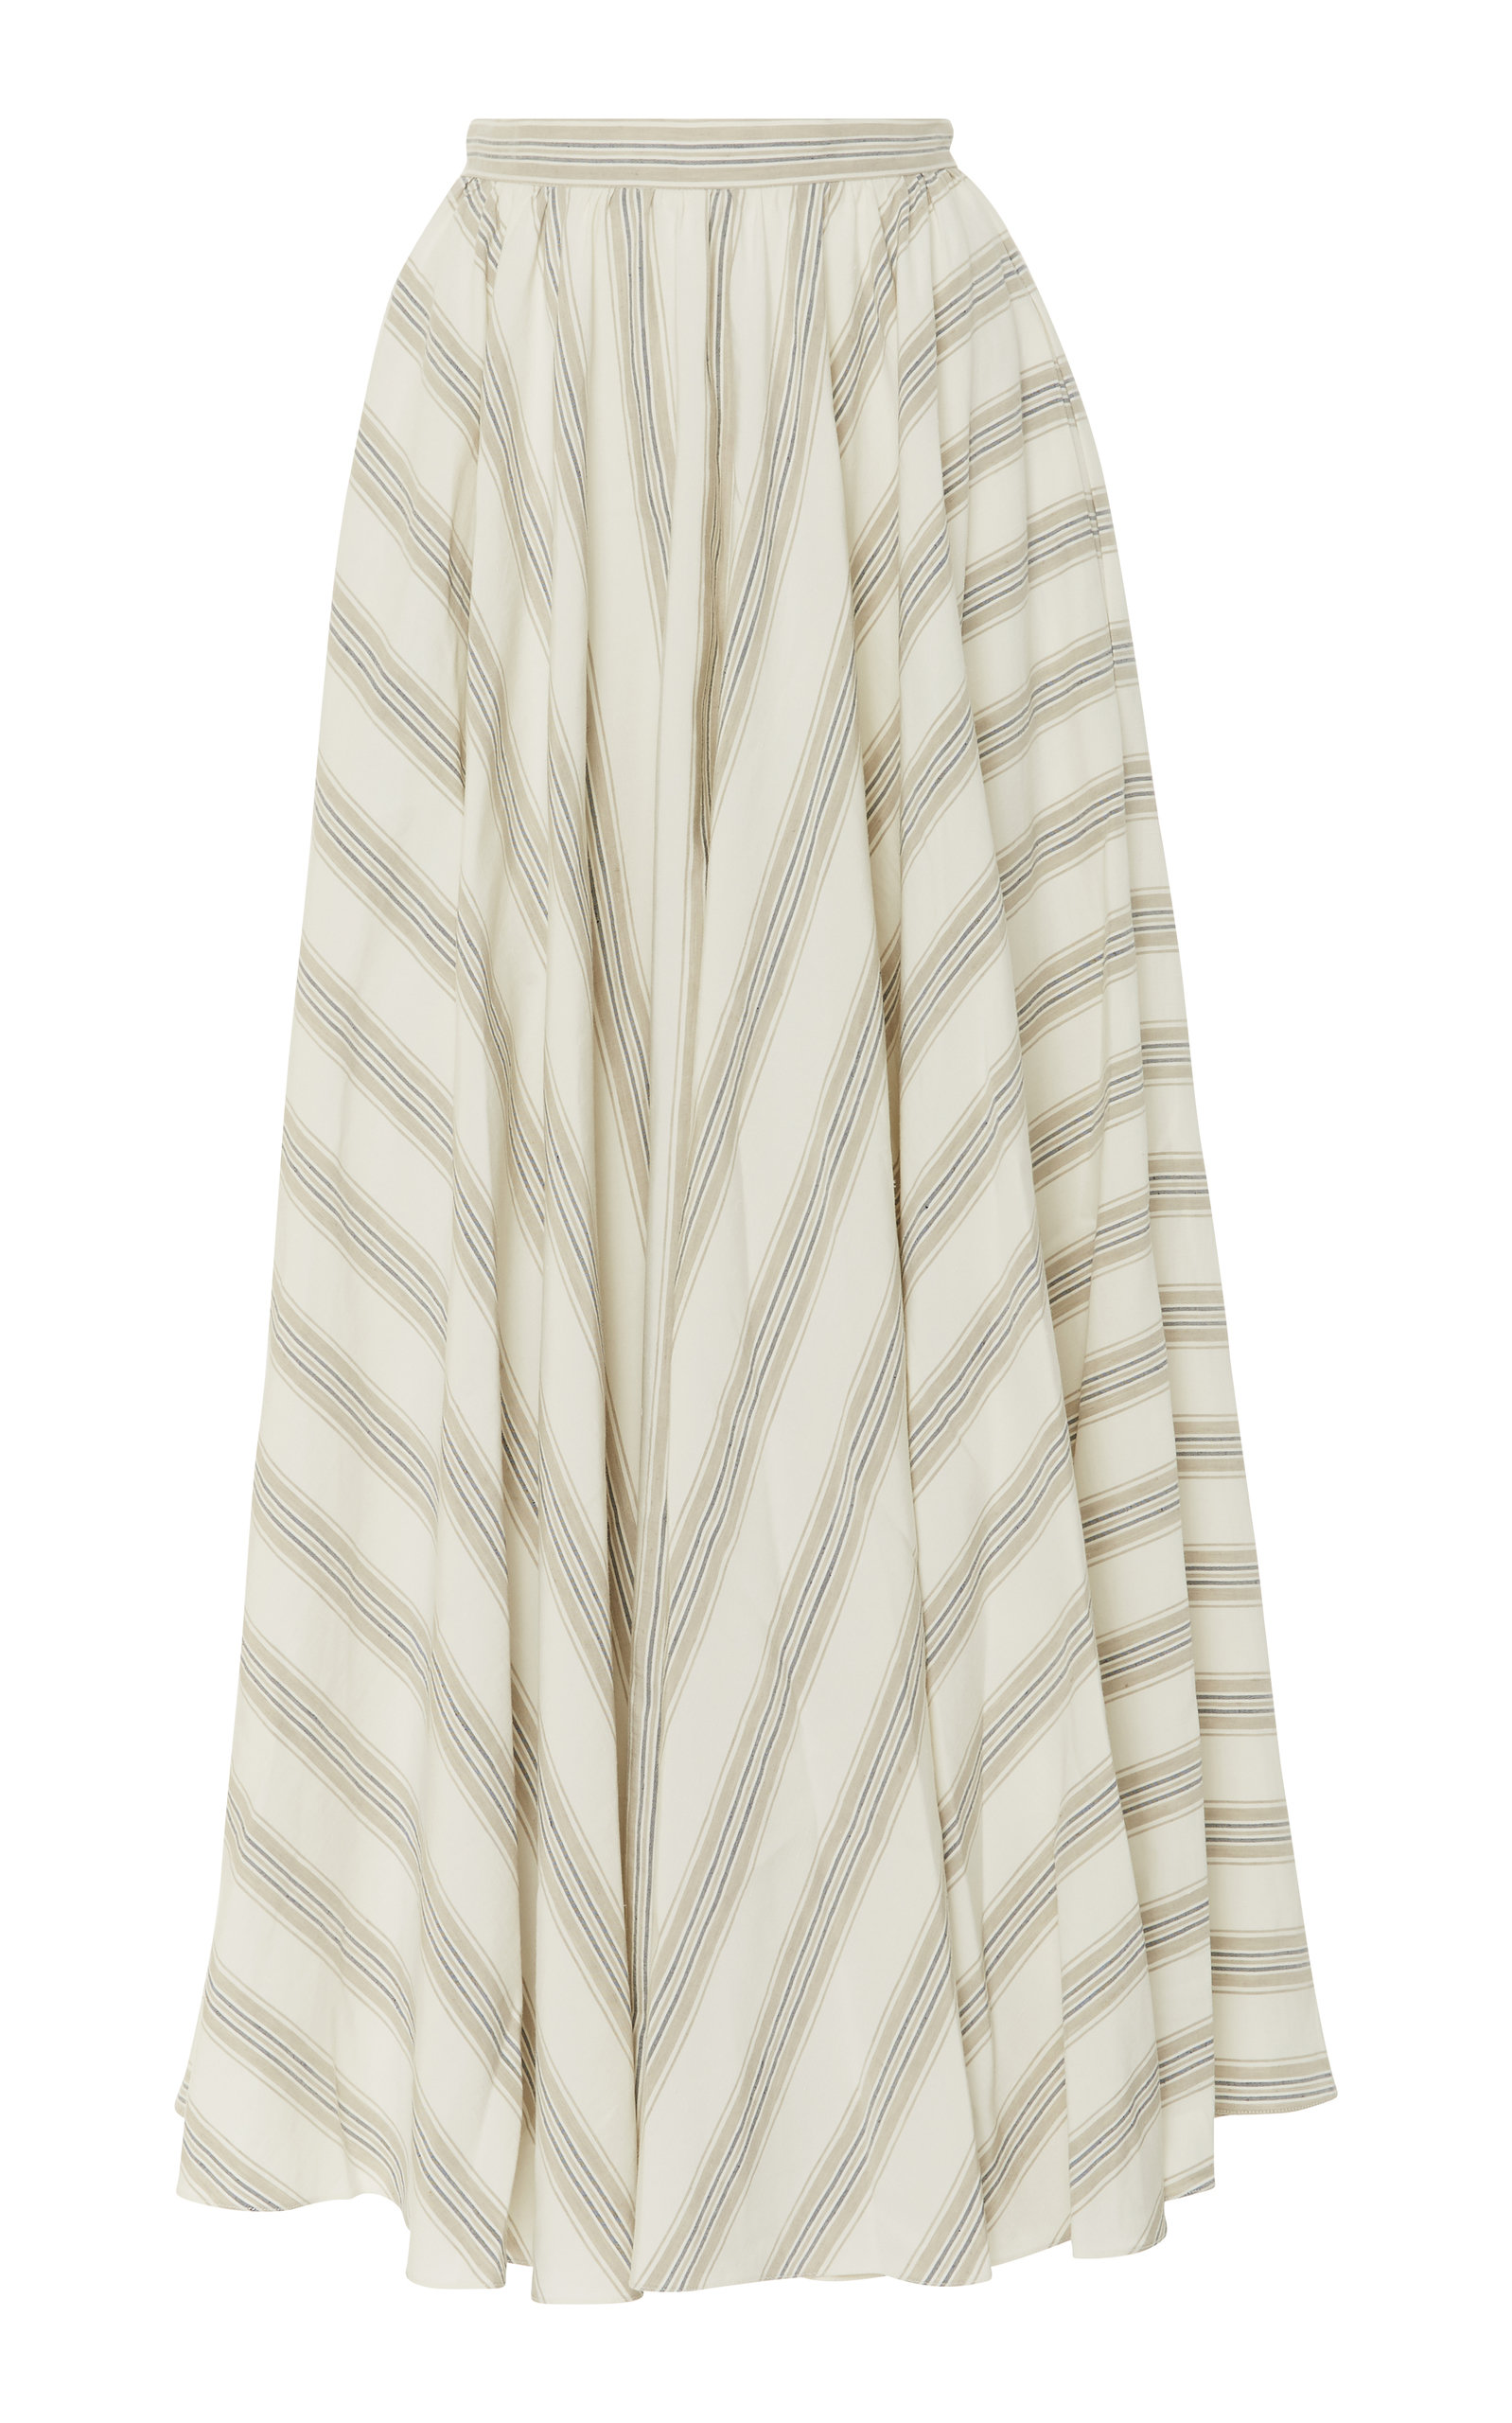 NOON BY NOOR LUTHER SILK BLEND STRIPED MAXI SKIRT